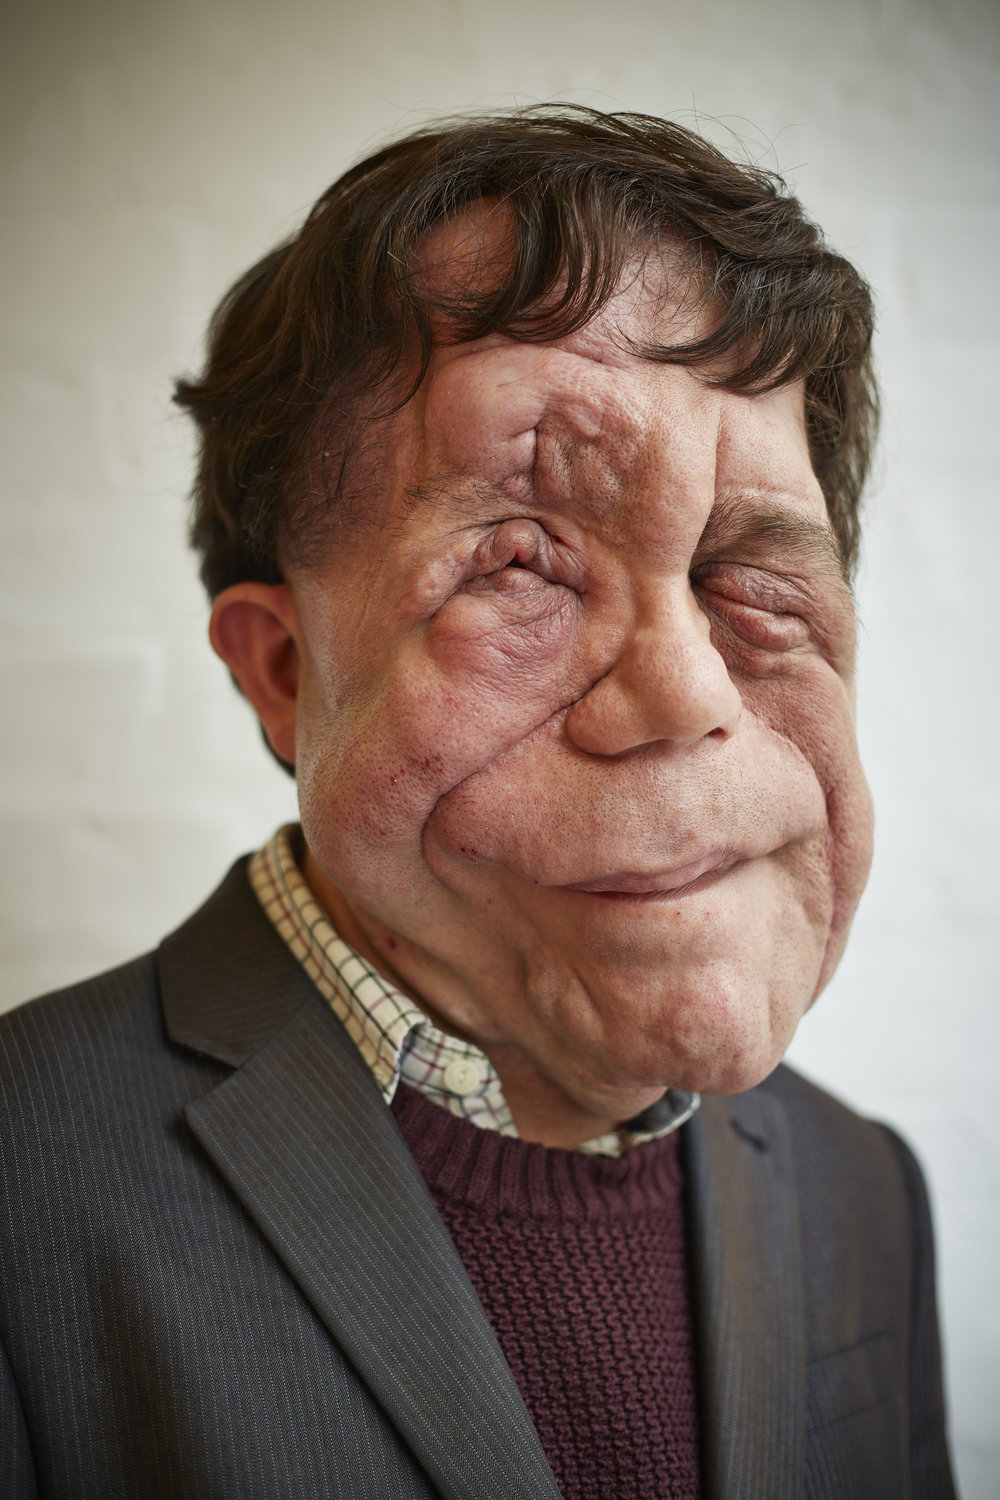 Adam Pearson - Award-winning campaigner, actor and presenter.